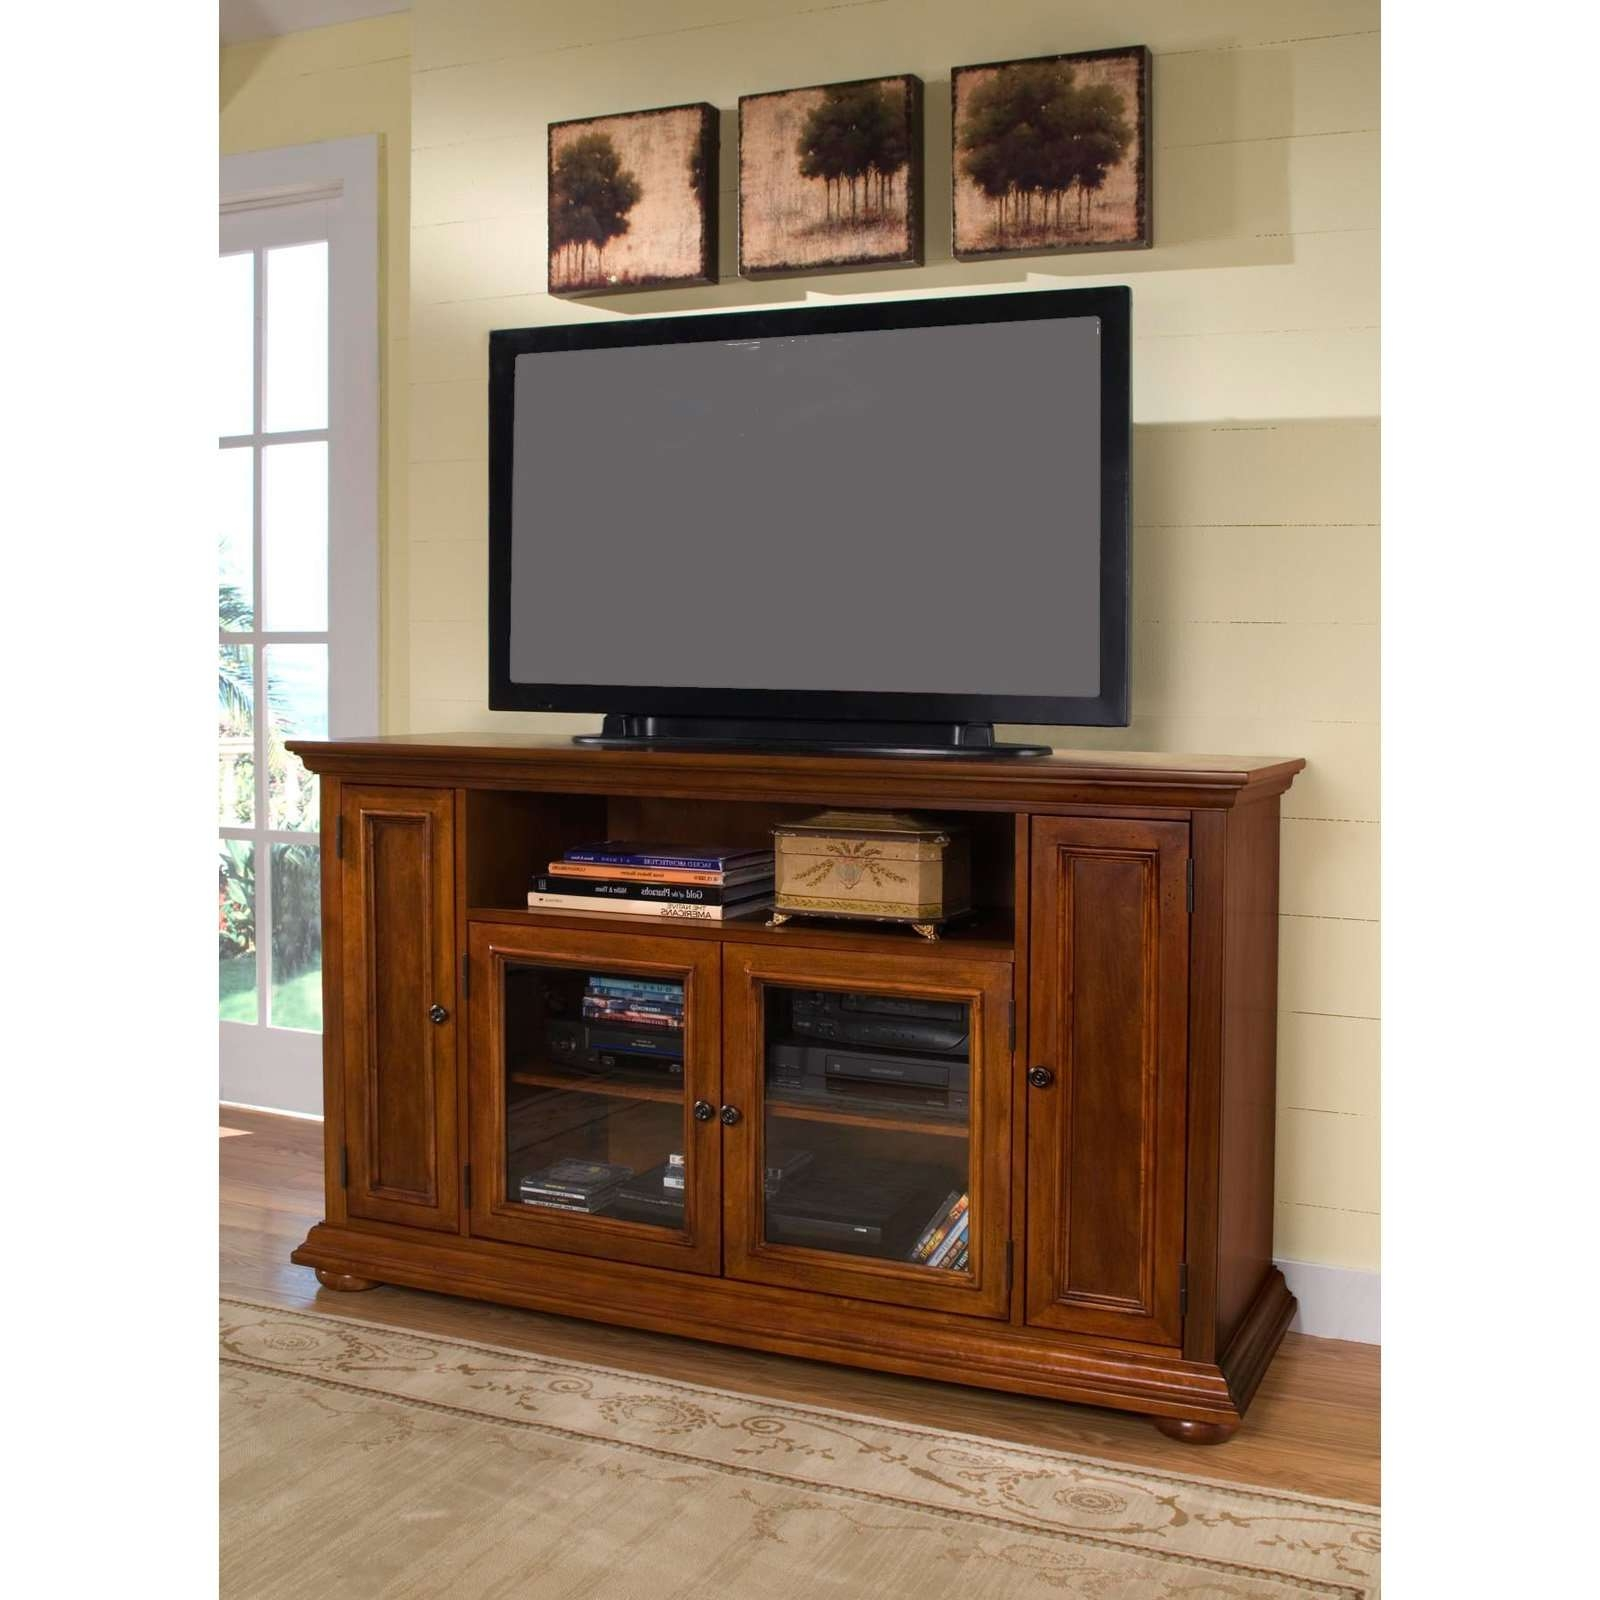 Rectangle Black Flat Screen Tv Over Brown Wooden Cabinet With For Wooden Tv Cabinets With Glass Doors (View 16 of 20)